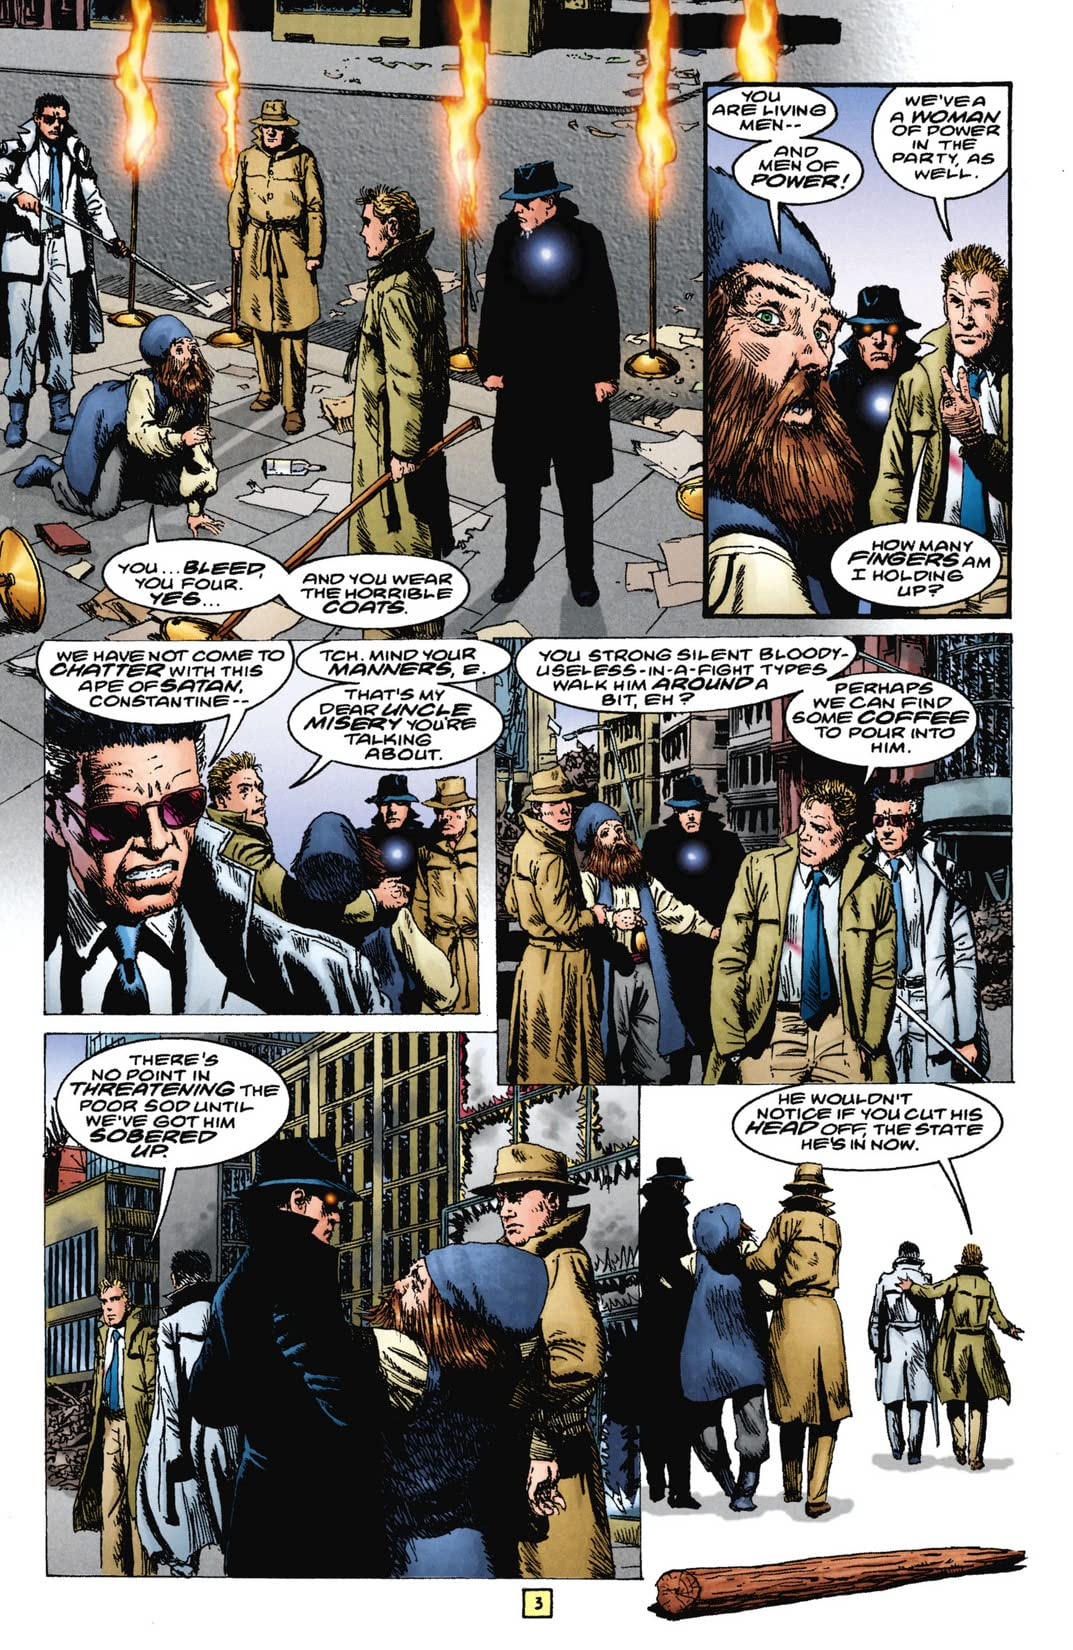 The Trenchcoat Brigade #2 (of 4)